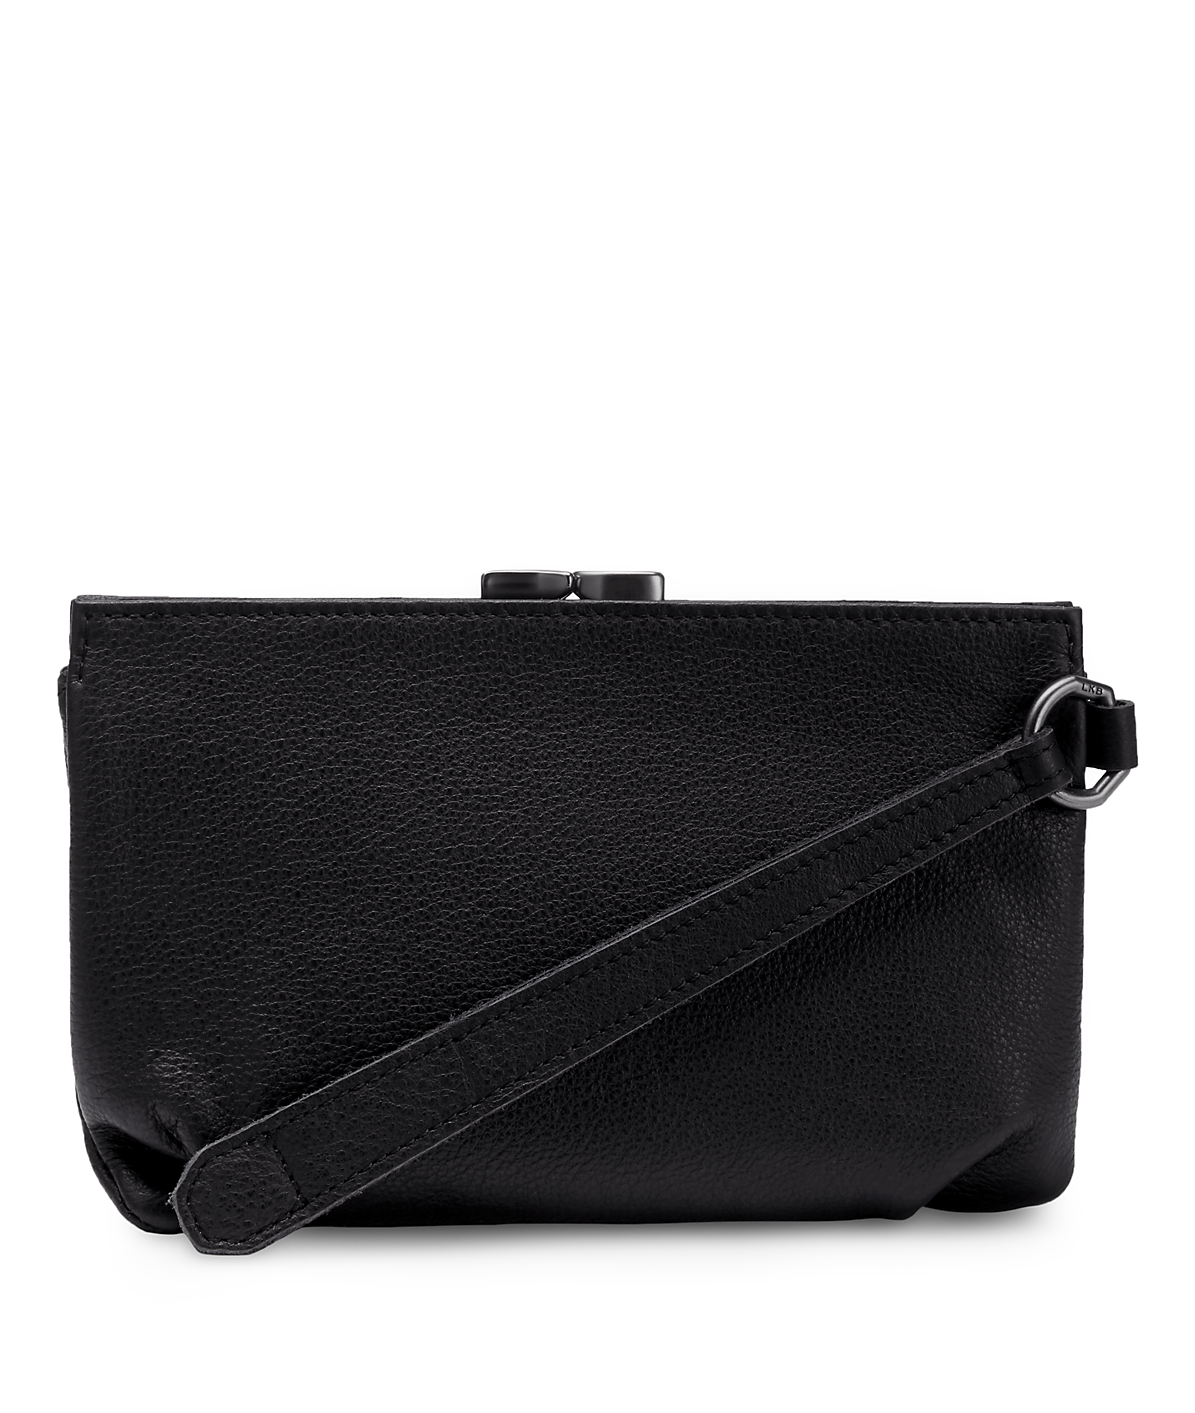 Patsy clutch from liebeskind